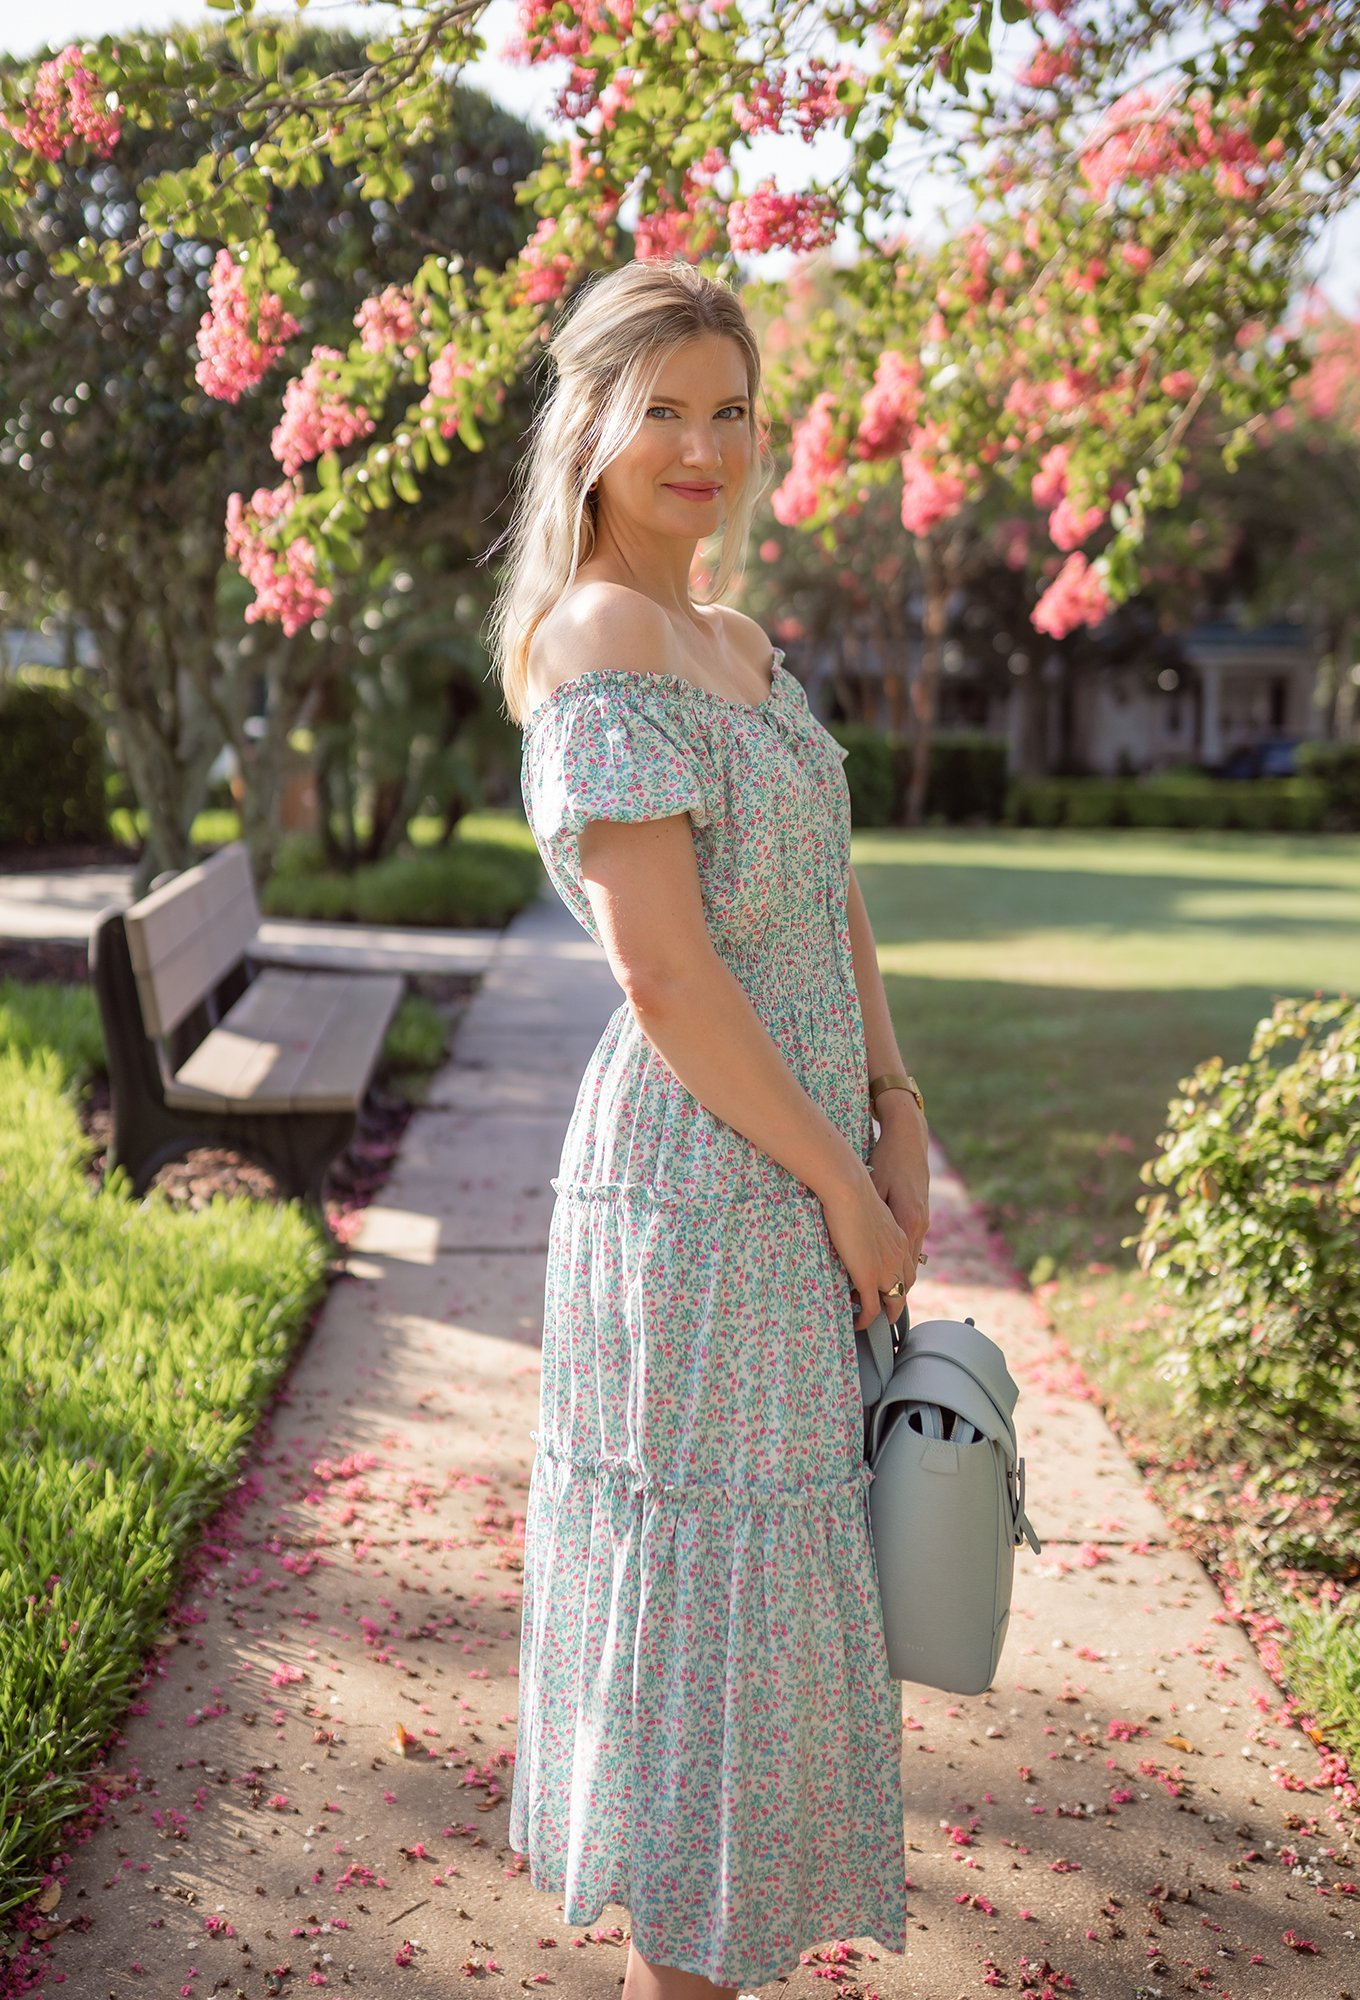 Puff-sleeve midi dress in floral - Ashley Brooke - 2